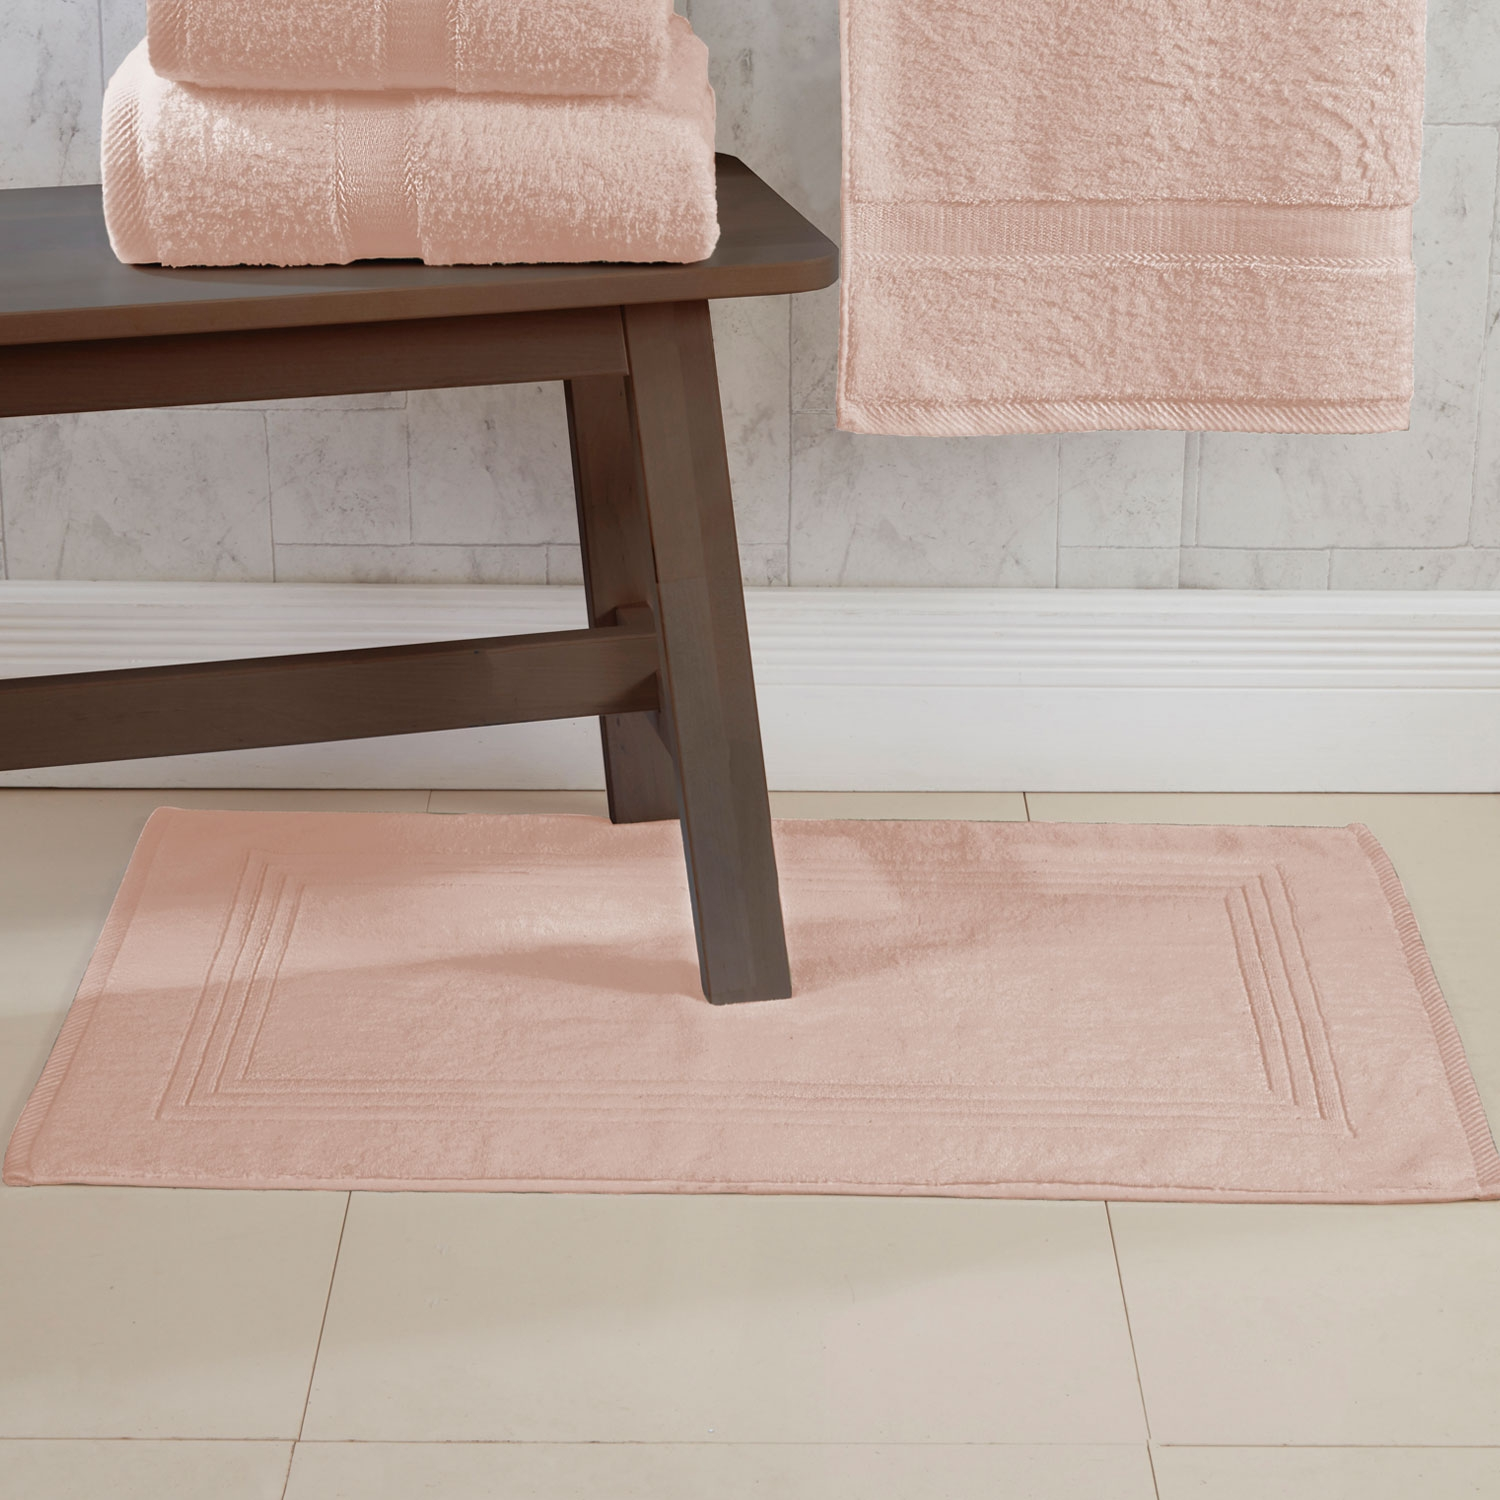 Blush 600gsm Egyptian Cotton Luxurious Bath Mat